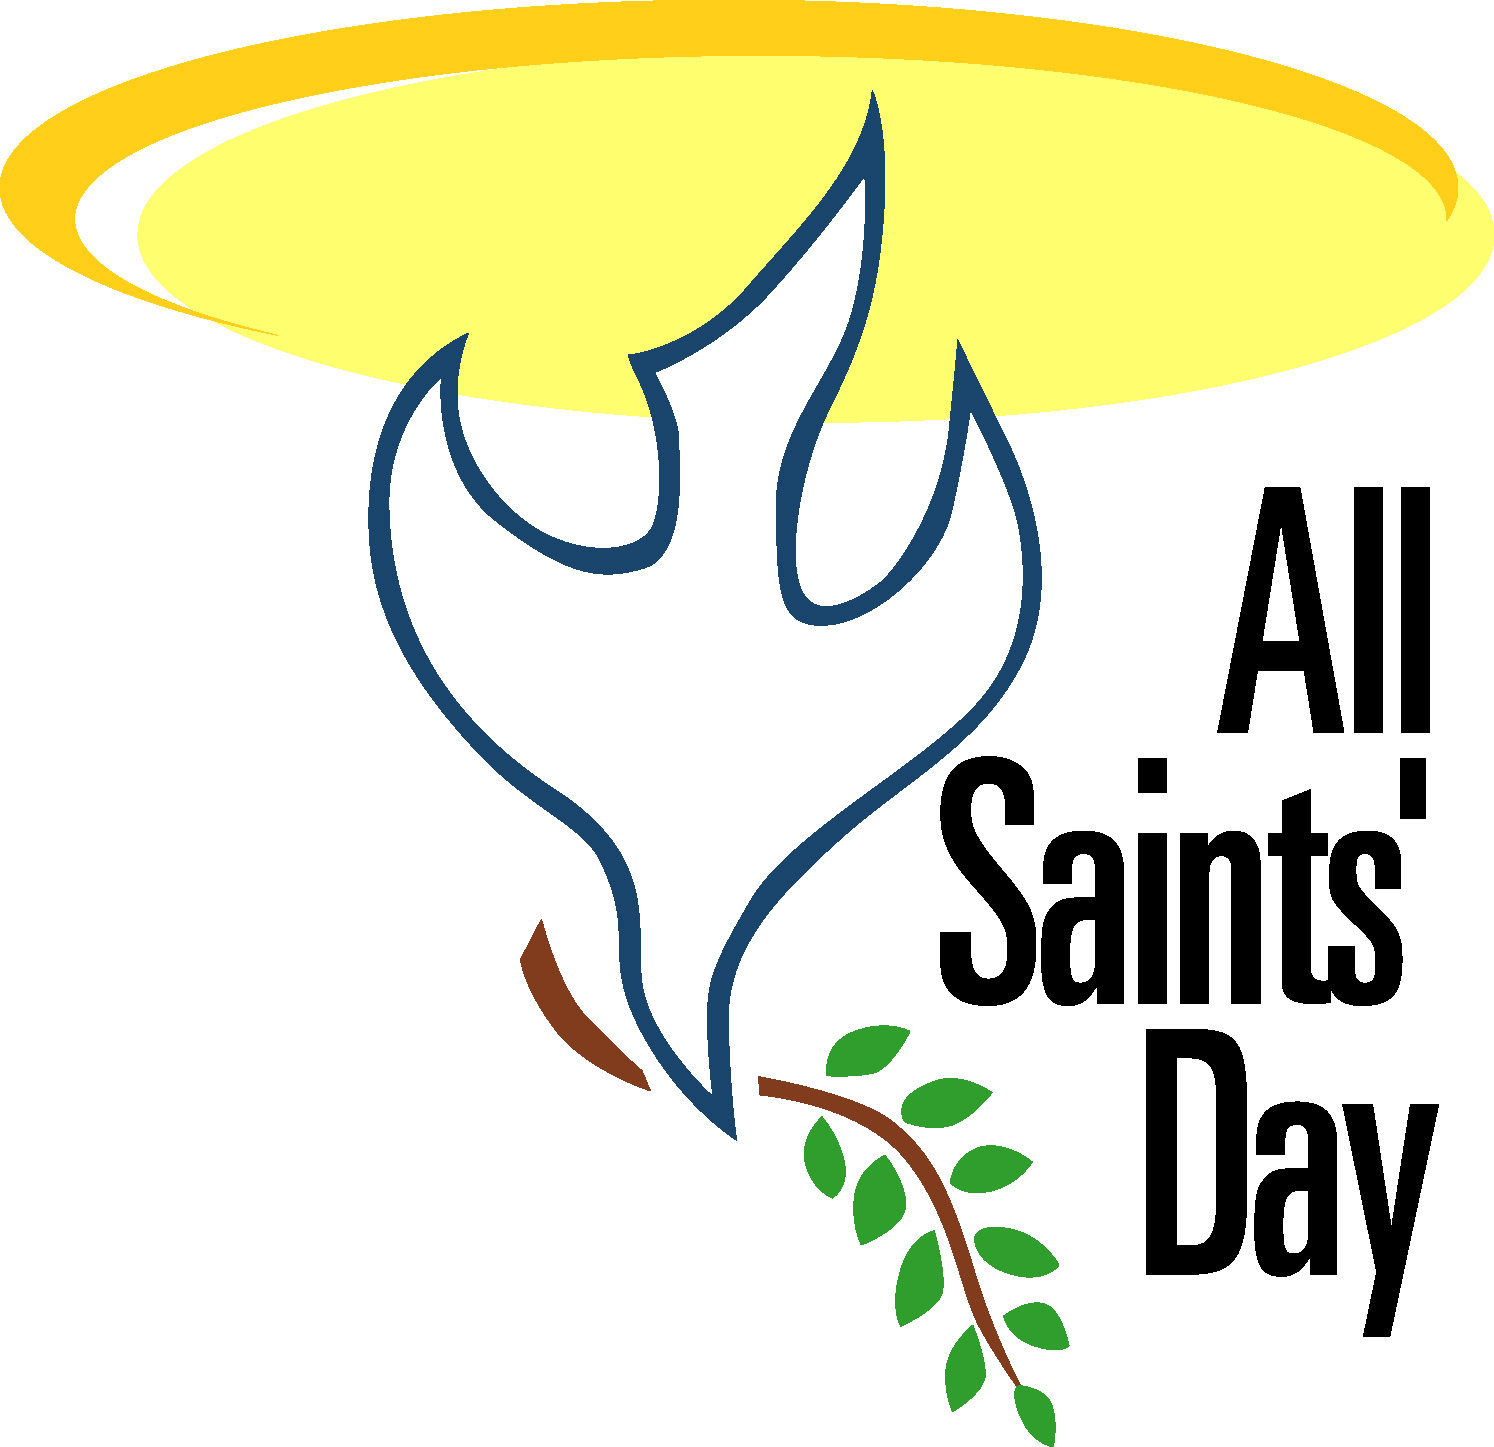 an analysis of all saints day Origin, genre, and themes the holy day of all saints (all hallows) dates back to the practices of the early church, but it was not universally observed until the eighth century, when pope gregory iii fixed november 1 as the day dedicated to the worship of all saints.